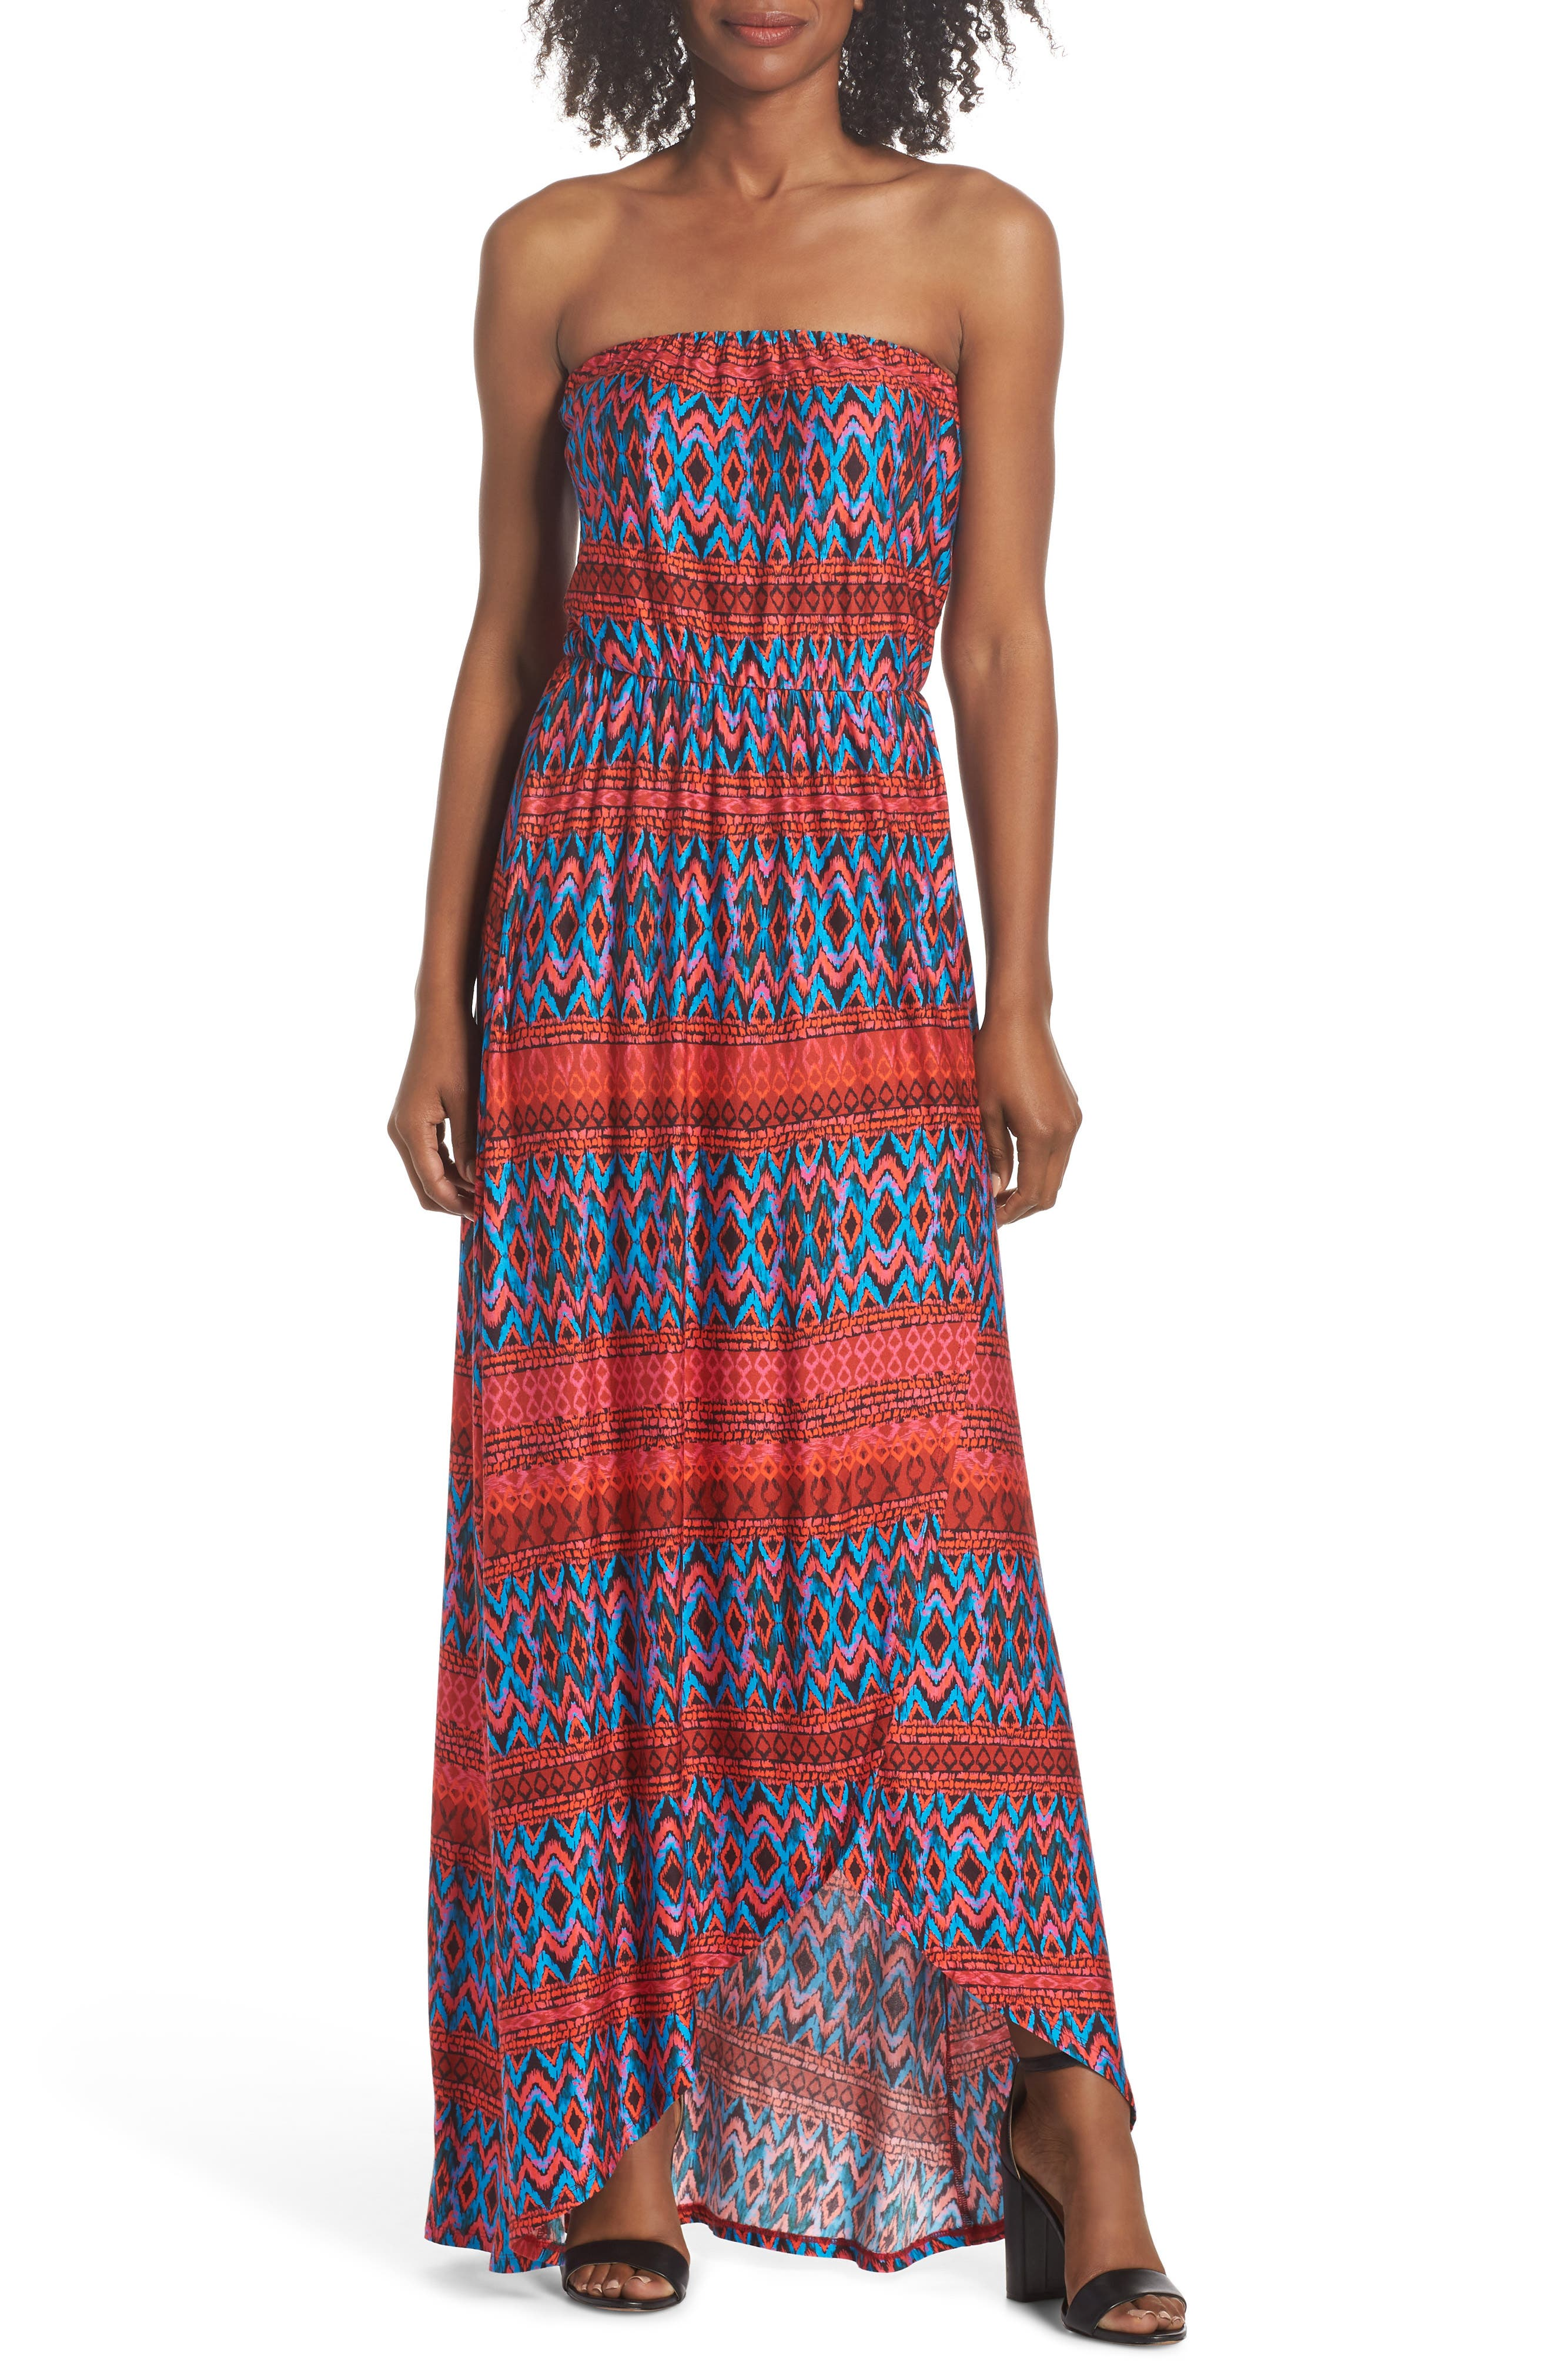 Felicity & Coco Strapless High/Low Dress (Regular & Petite) (Nordstrom Exclusive)